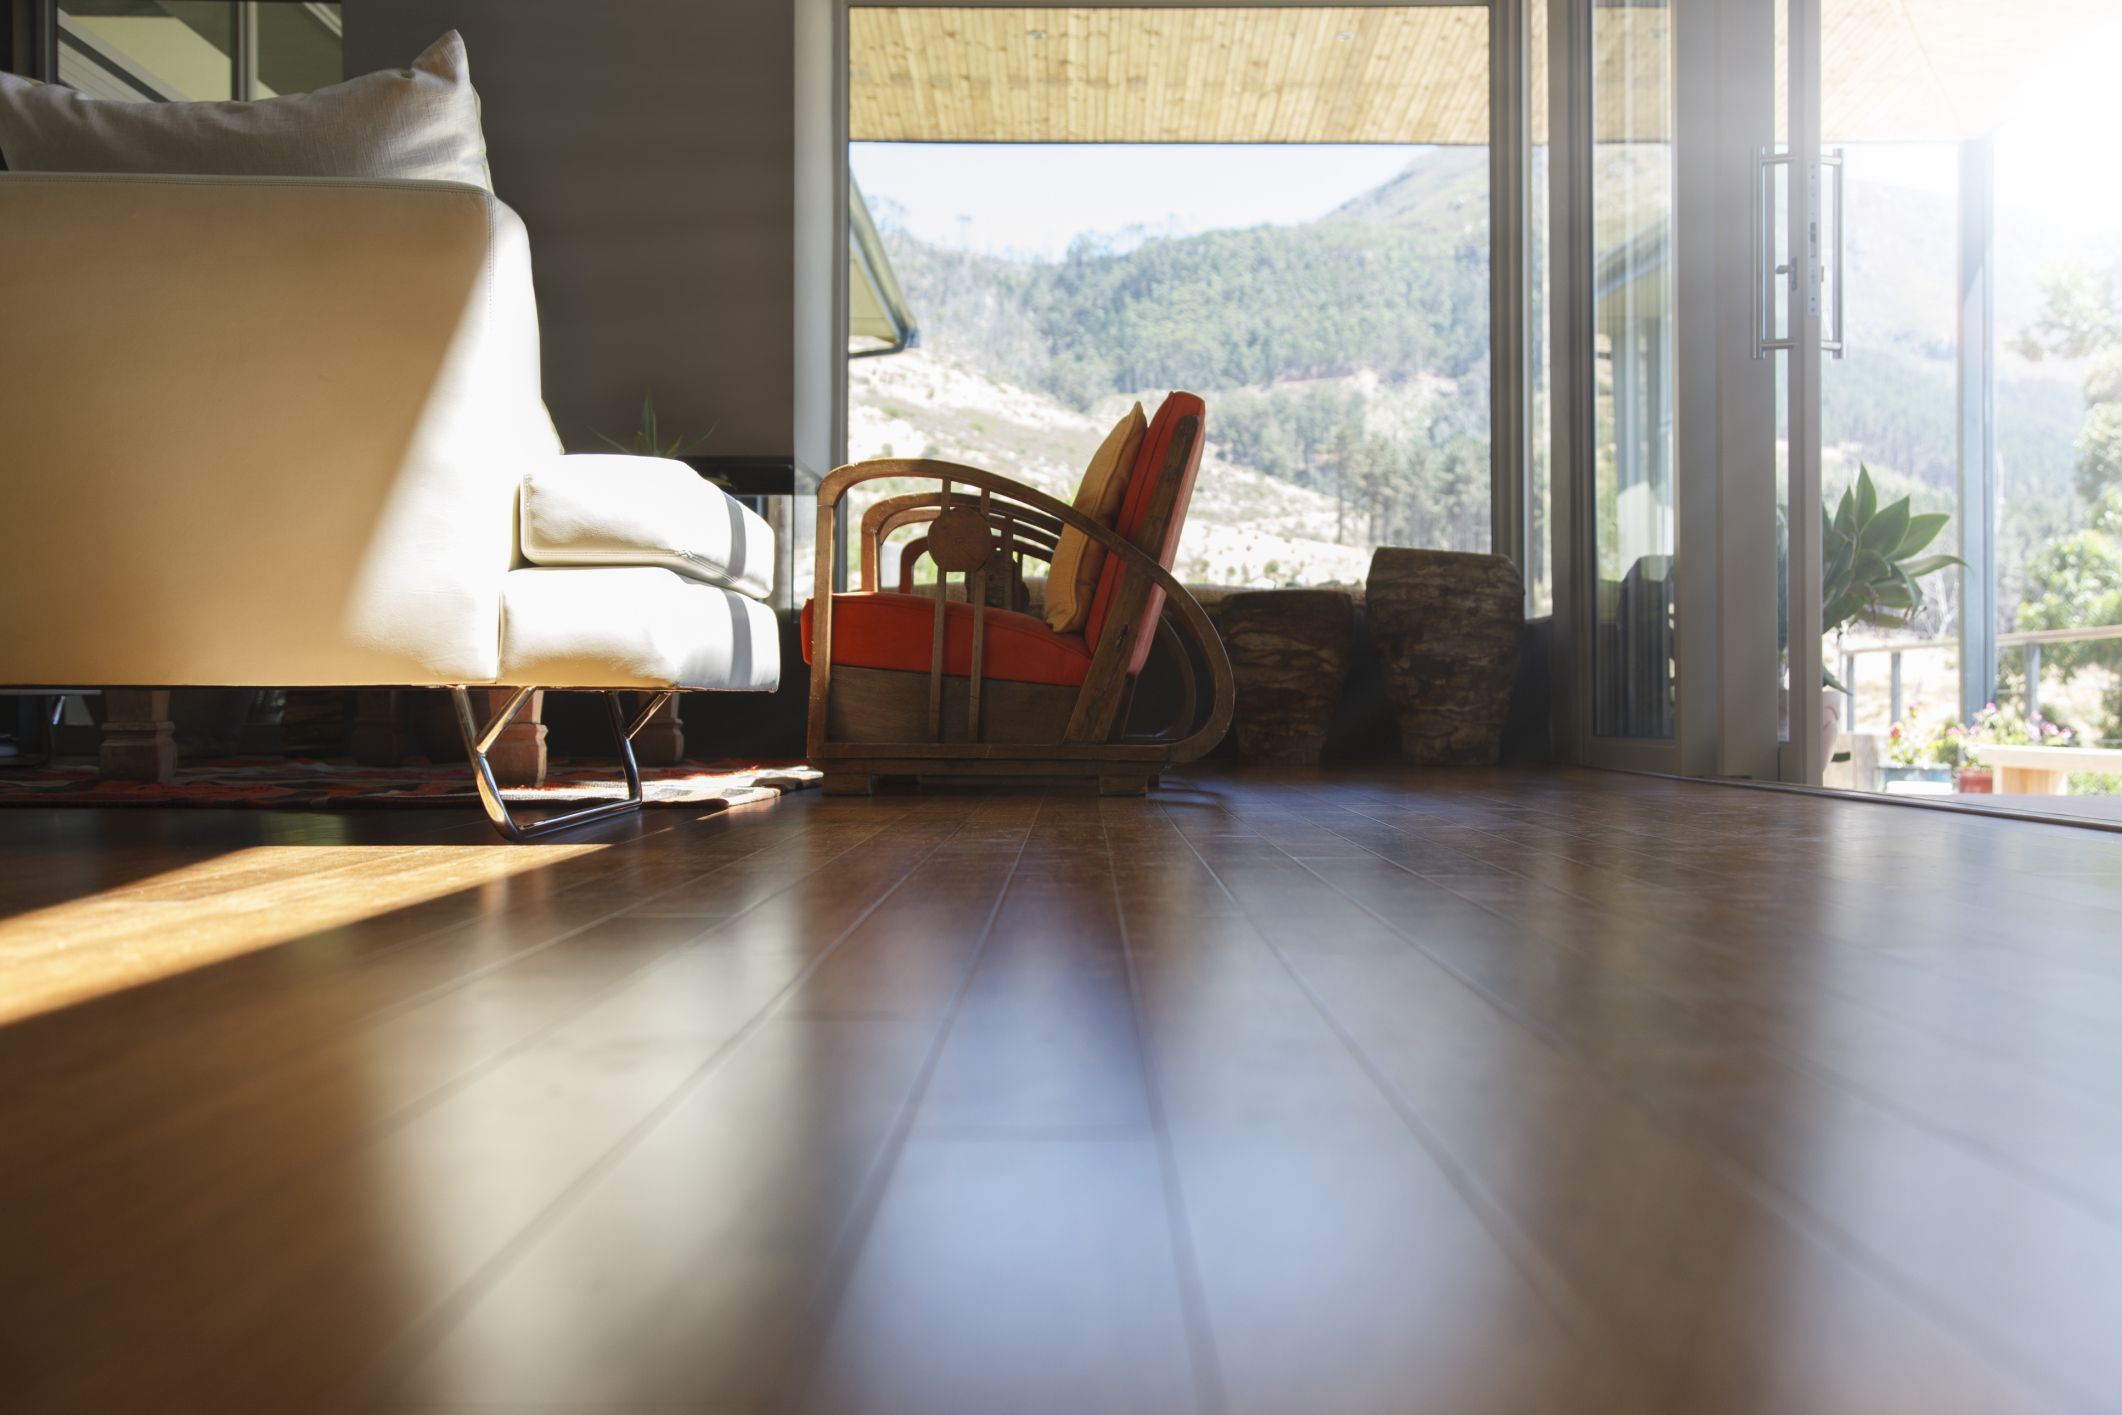 hardwood floor sofa protector of floating floors basics types and pros and cons regarding exotic hardwood flooring 525439899 56a49d3a3df78cf77283453d